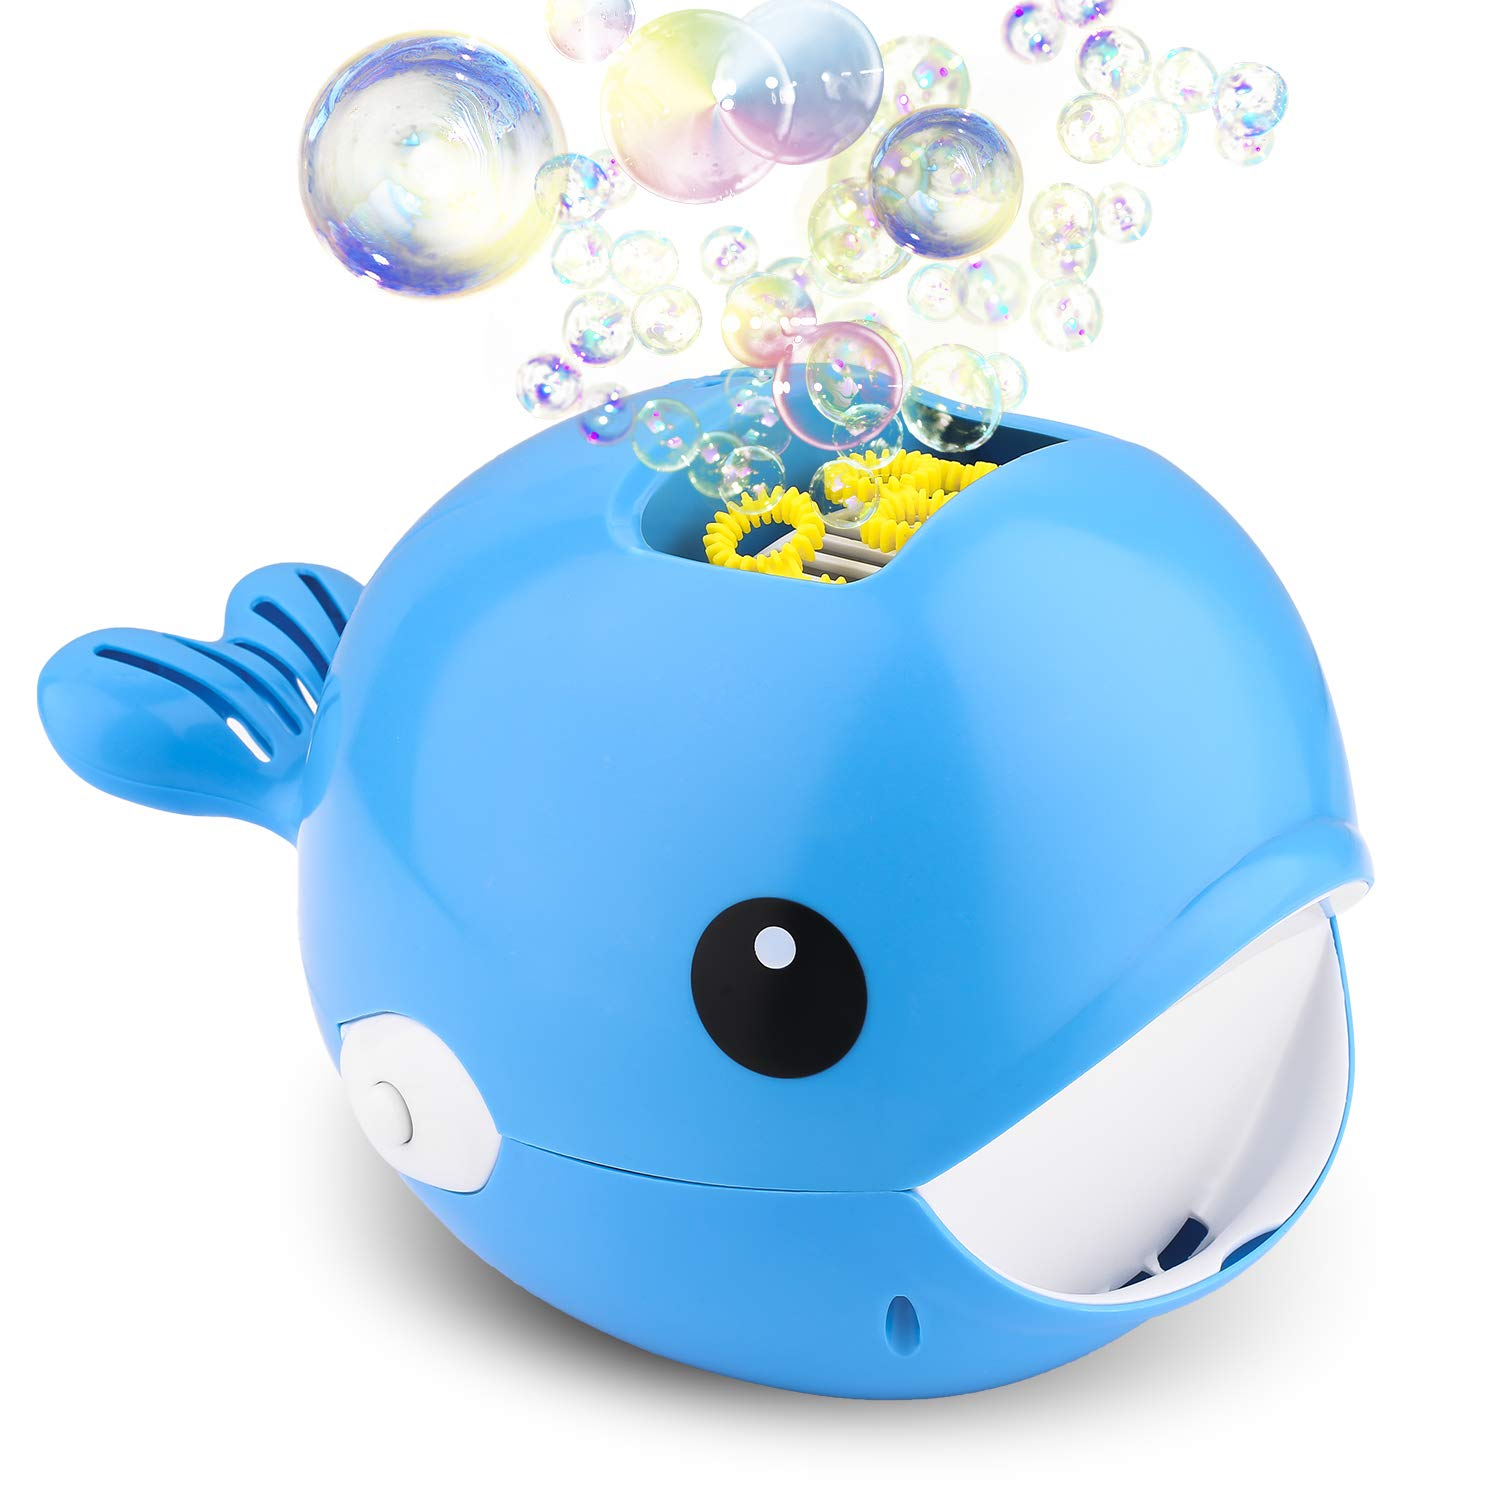 Biulotter Bubble Machine, Automatic Bubble Blower, Bubble Maker 2000+ Per Minute Bubble Machine for Kids, Easy to Use for Parties, Wedding, Indoor and Outdoor Activities